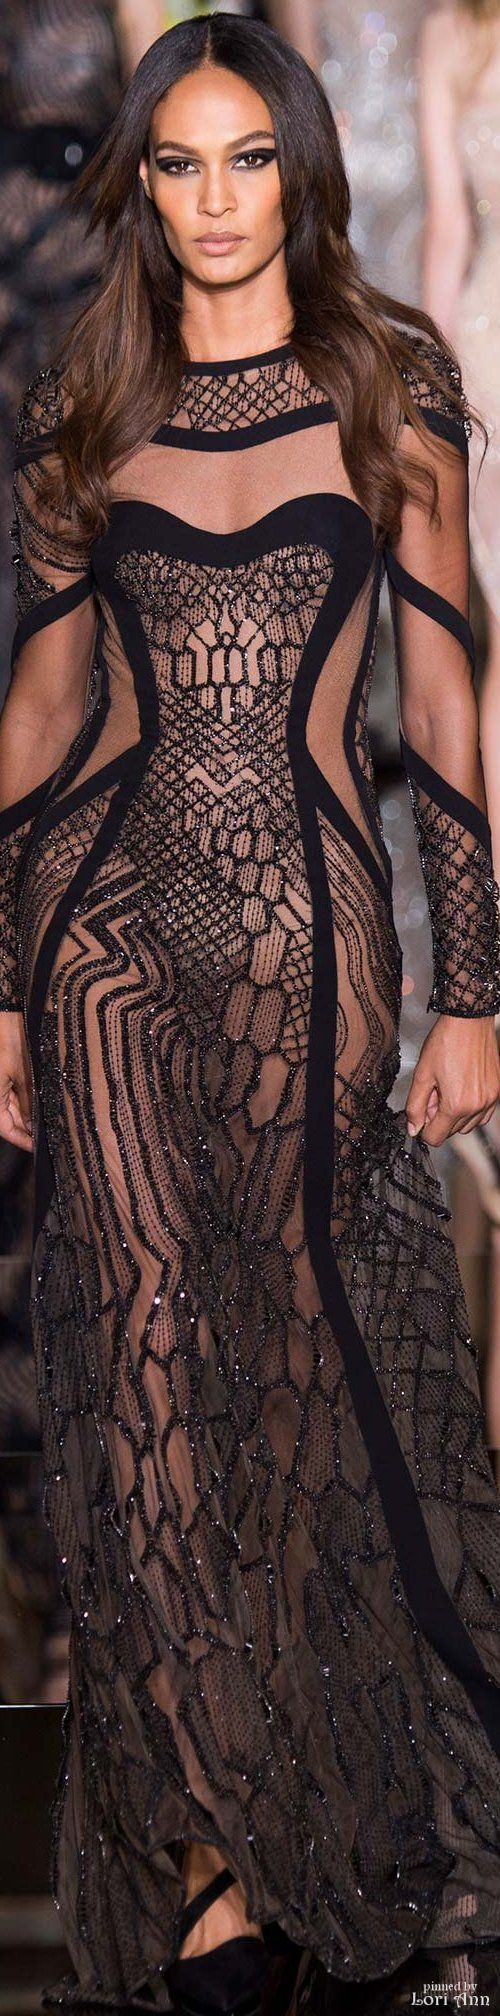 Atelier Versace Couture Spring 2015- if i were drunk i'd be brave enough LOL